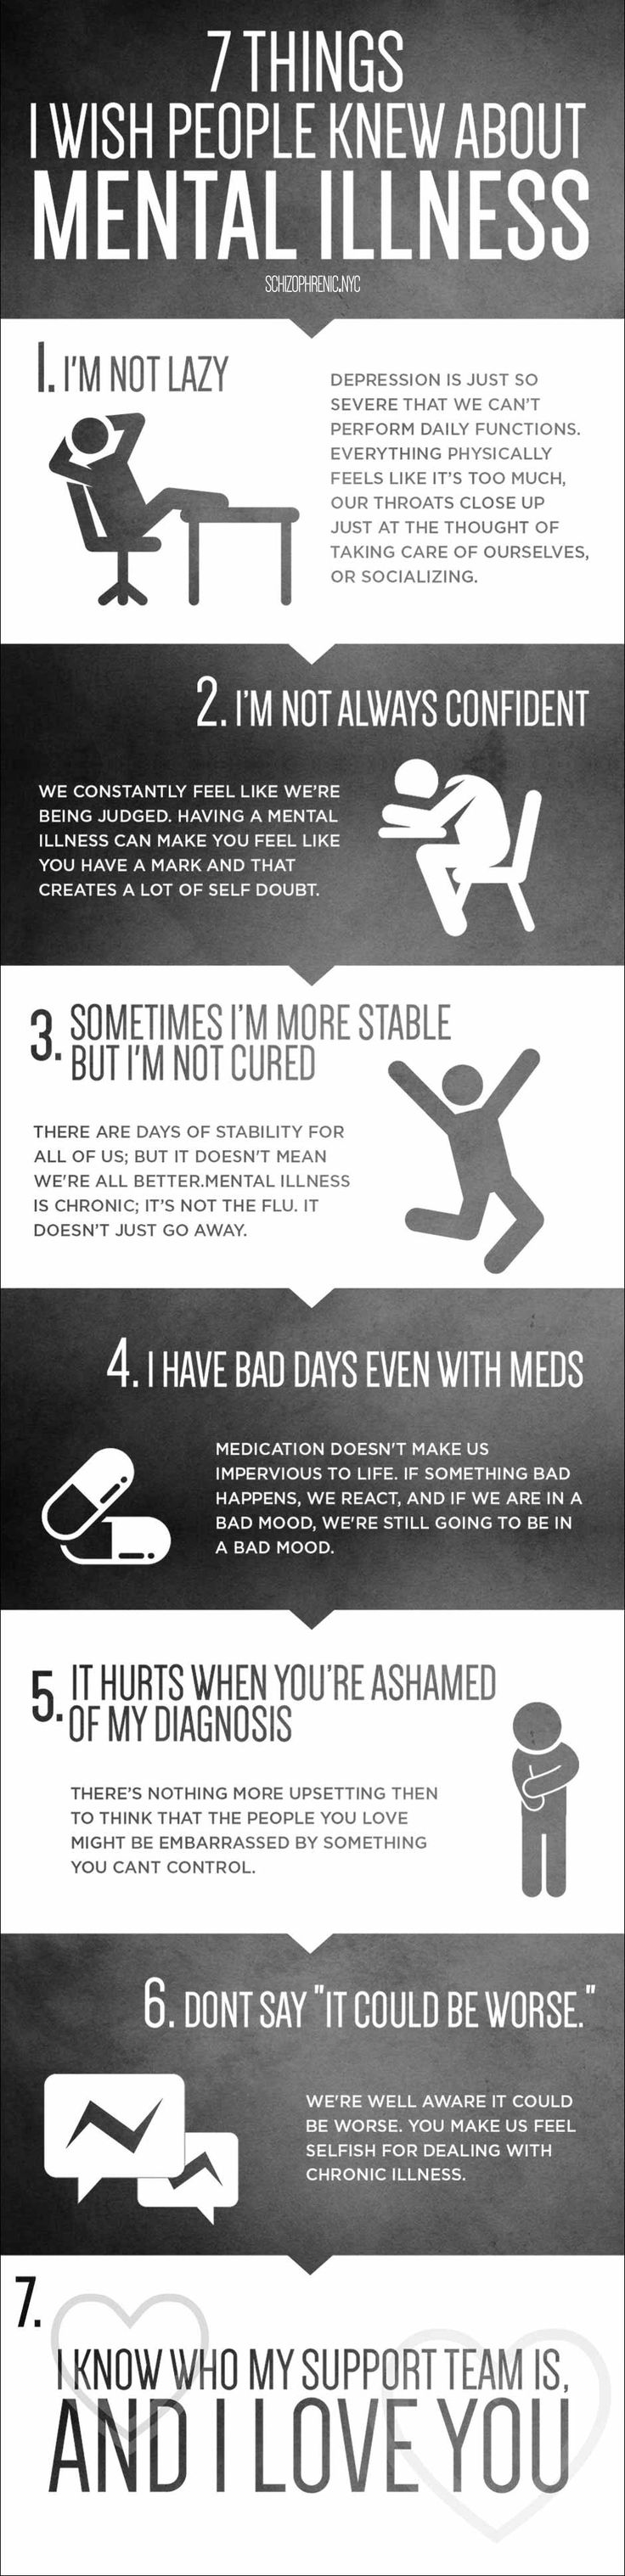 Psychology-Infographic-7-Things-I-Wish-People-Knew-About-Mental-Illness Psychology Infographic : 7 Things I Wish People Knew About Mental Illness